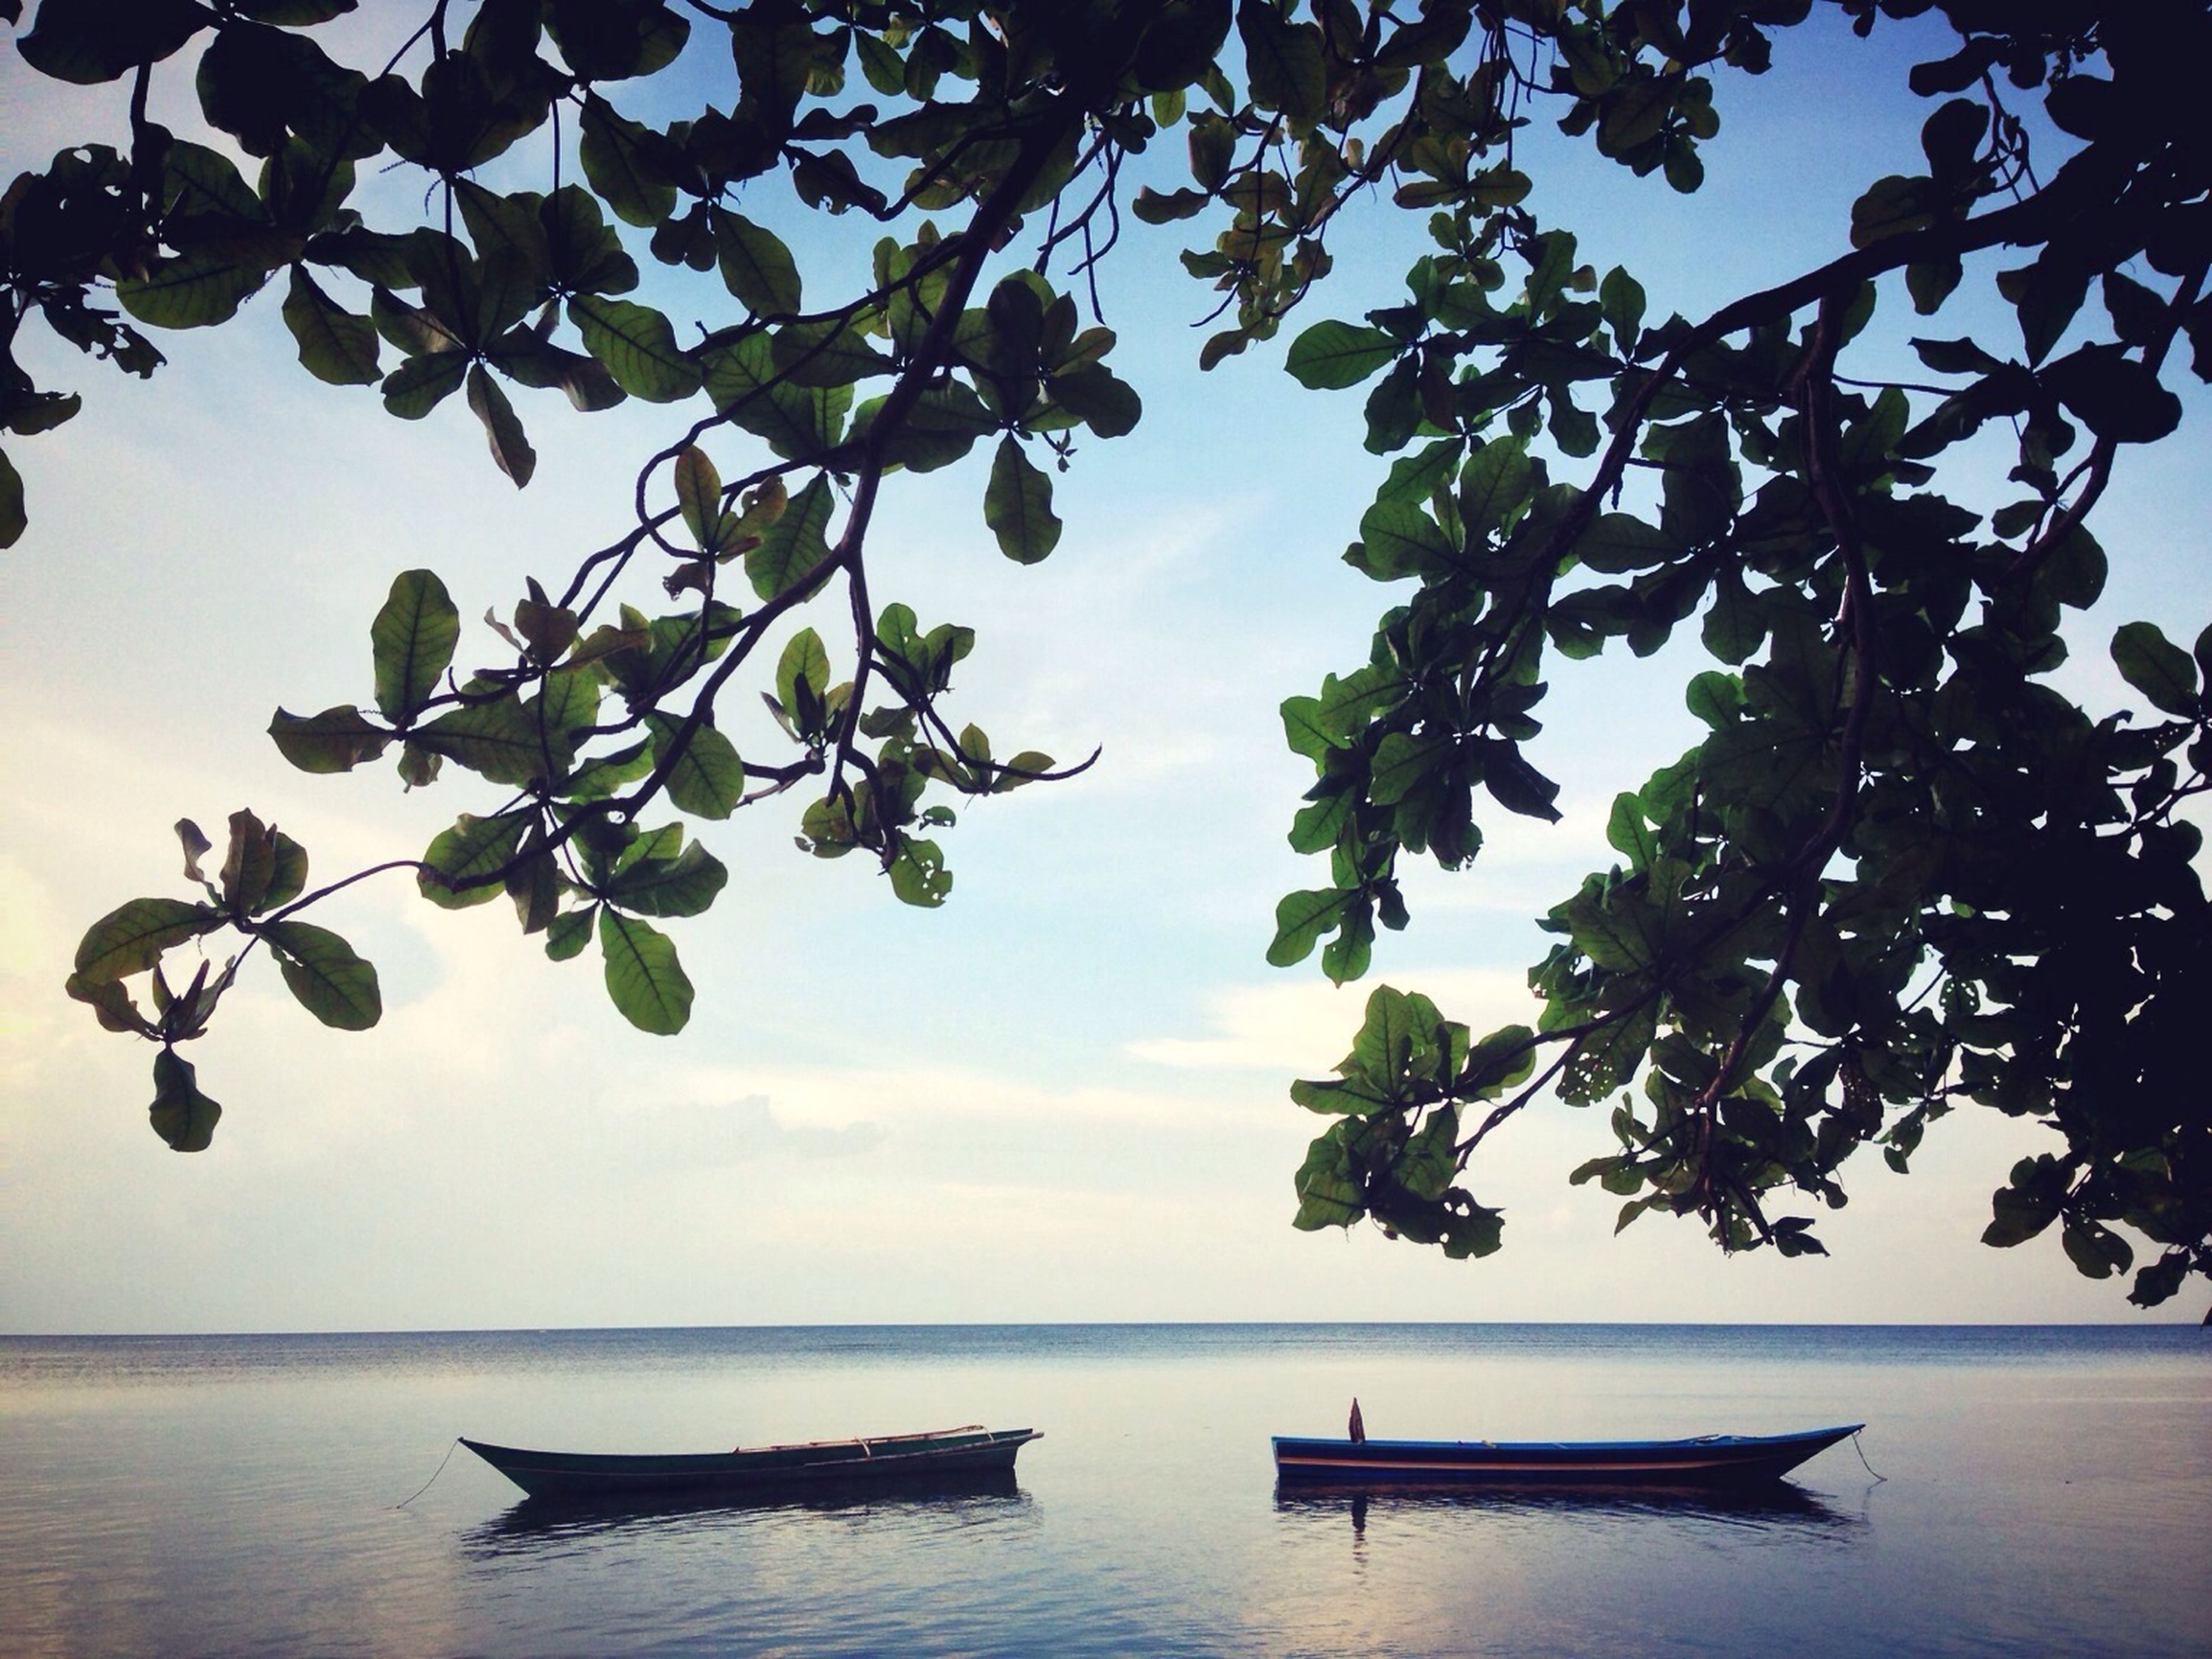 water, nautical vessel, boat, mode of transport, sky, transportation, sea, tree, tranquility, nature, moored, tranquil scene, horizon over water, scenics, beauty in nature, waterfront, silhouette, lake, reflection, branch